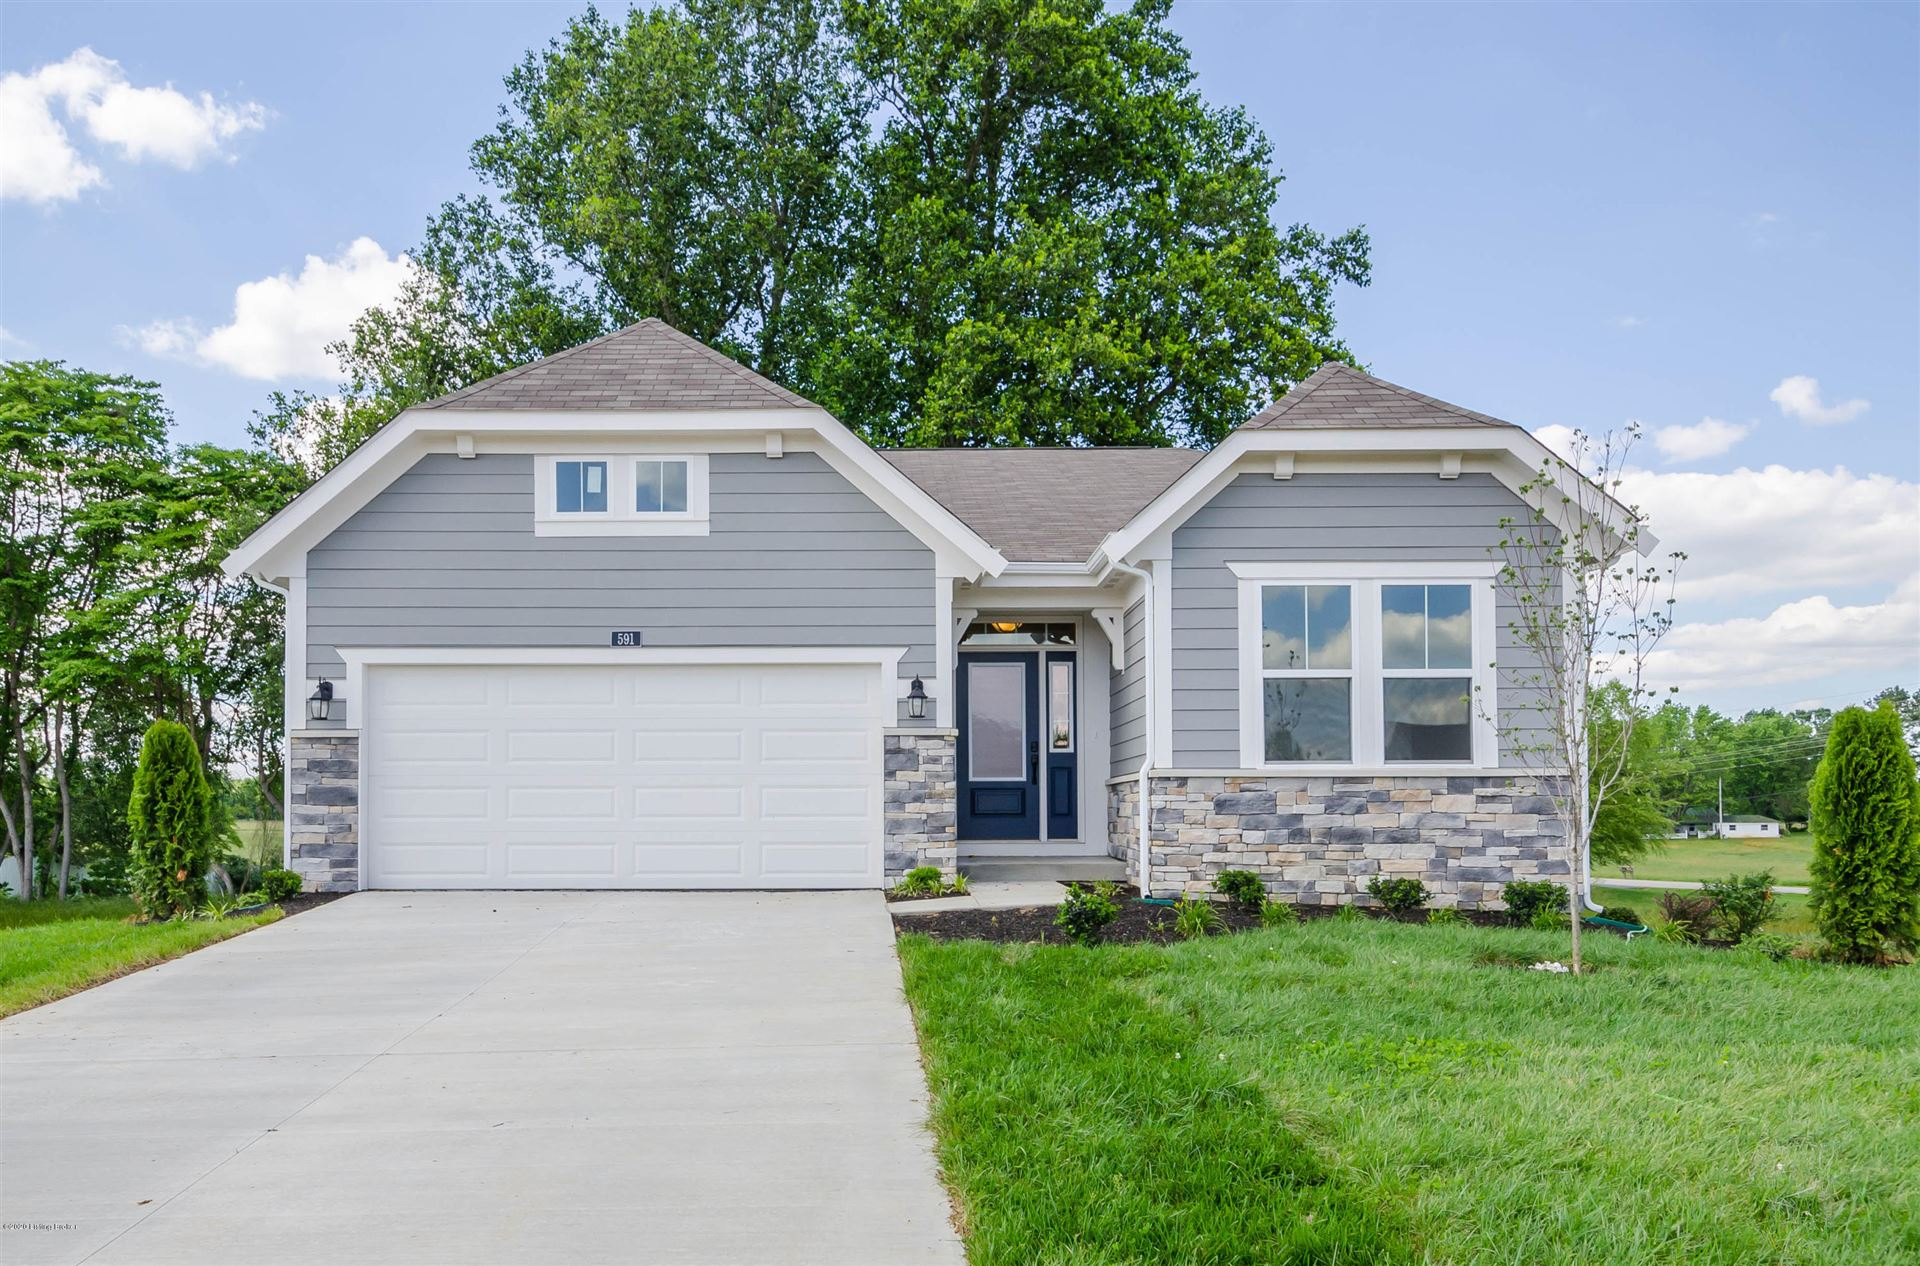 Property Image Of 591 Williamsburg Dr In Mt Washington, Ky